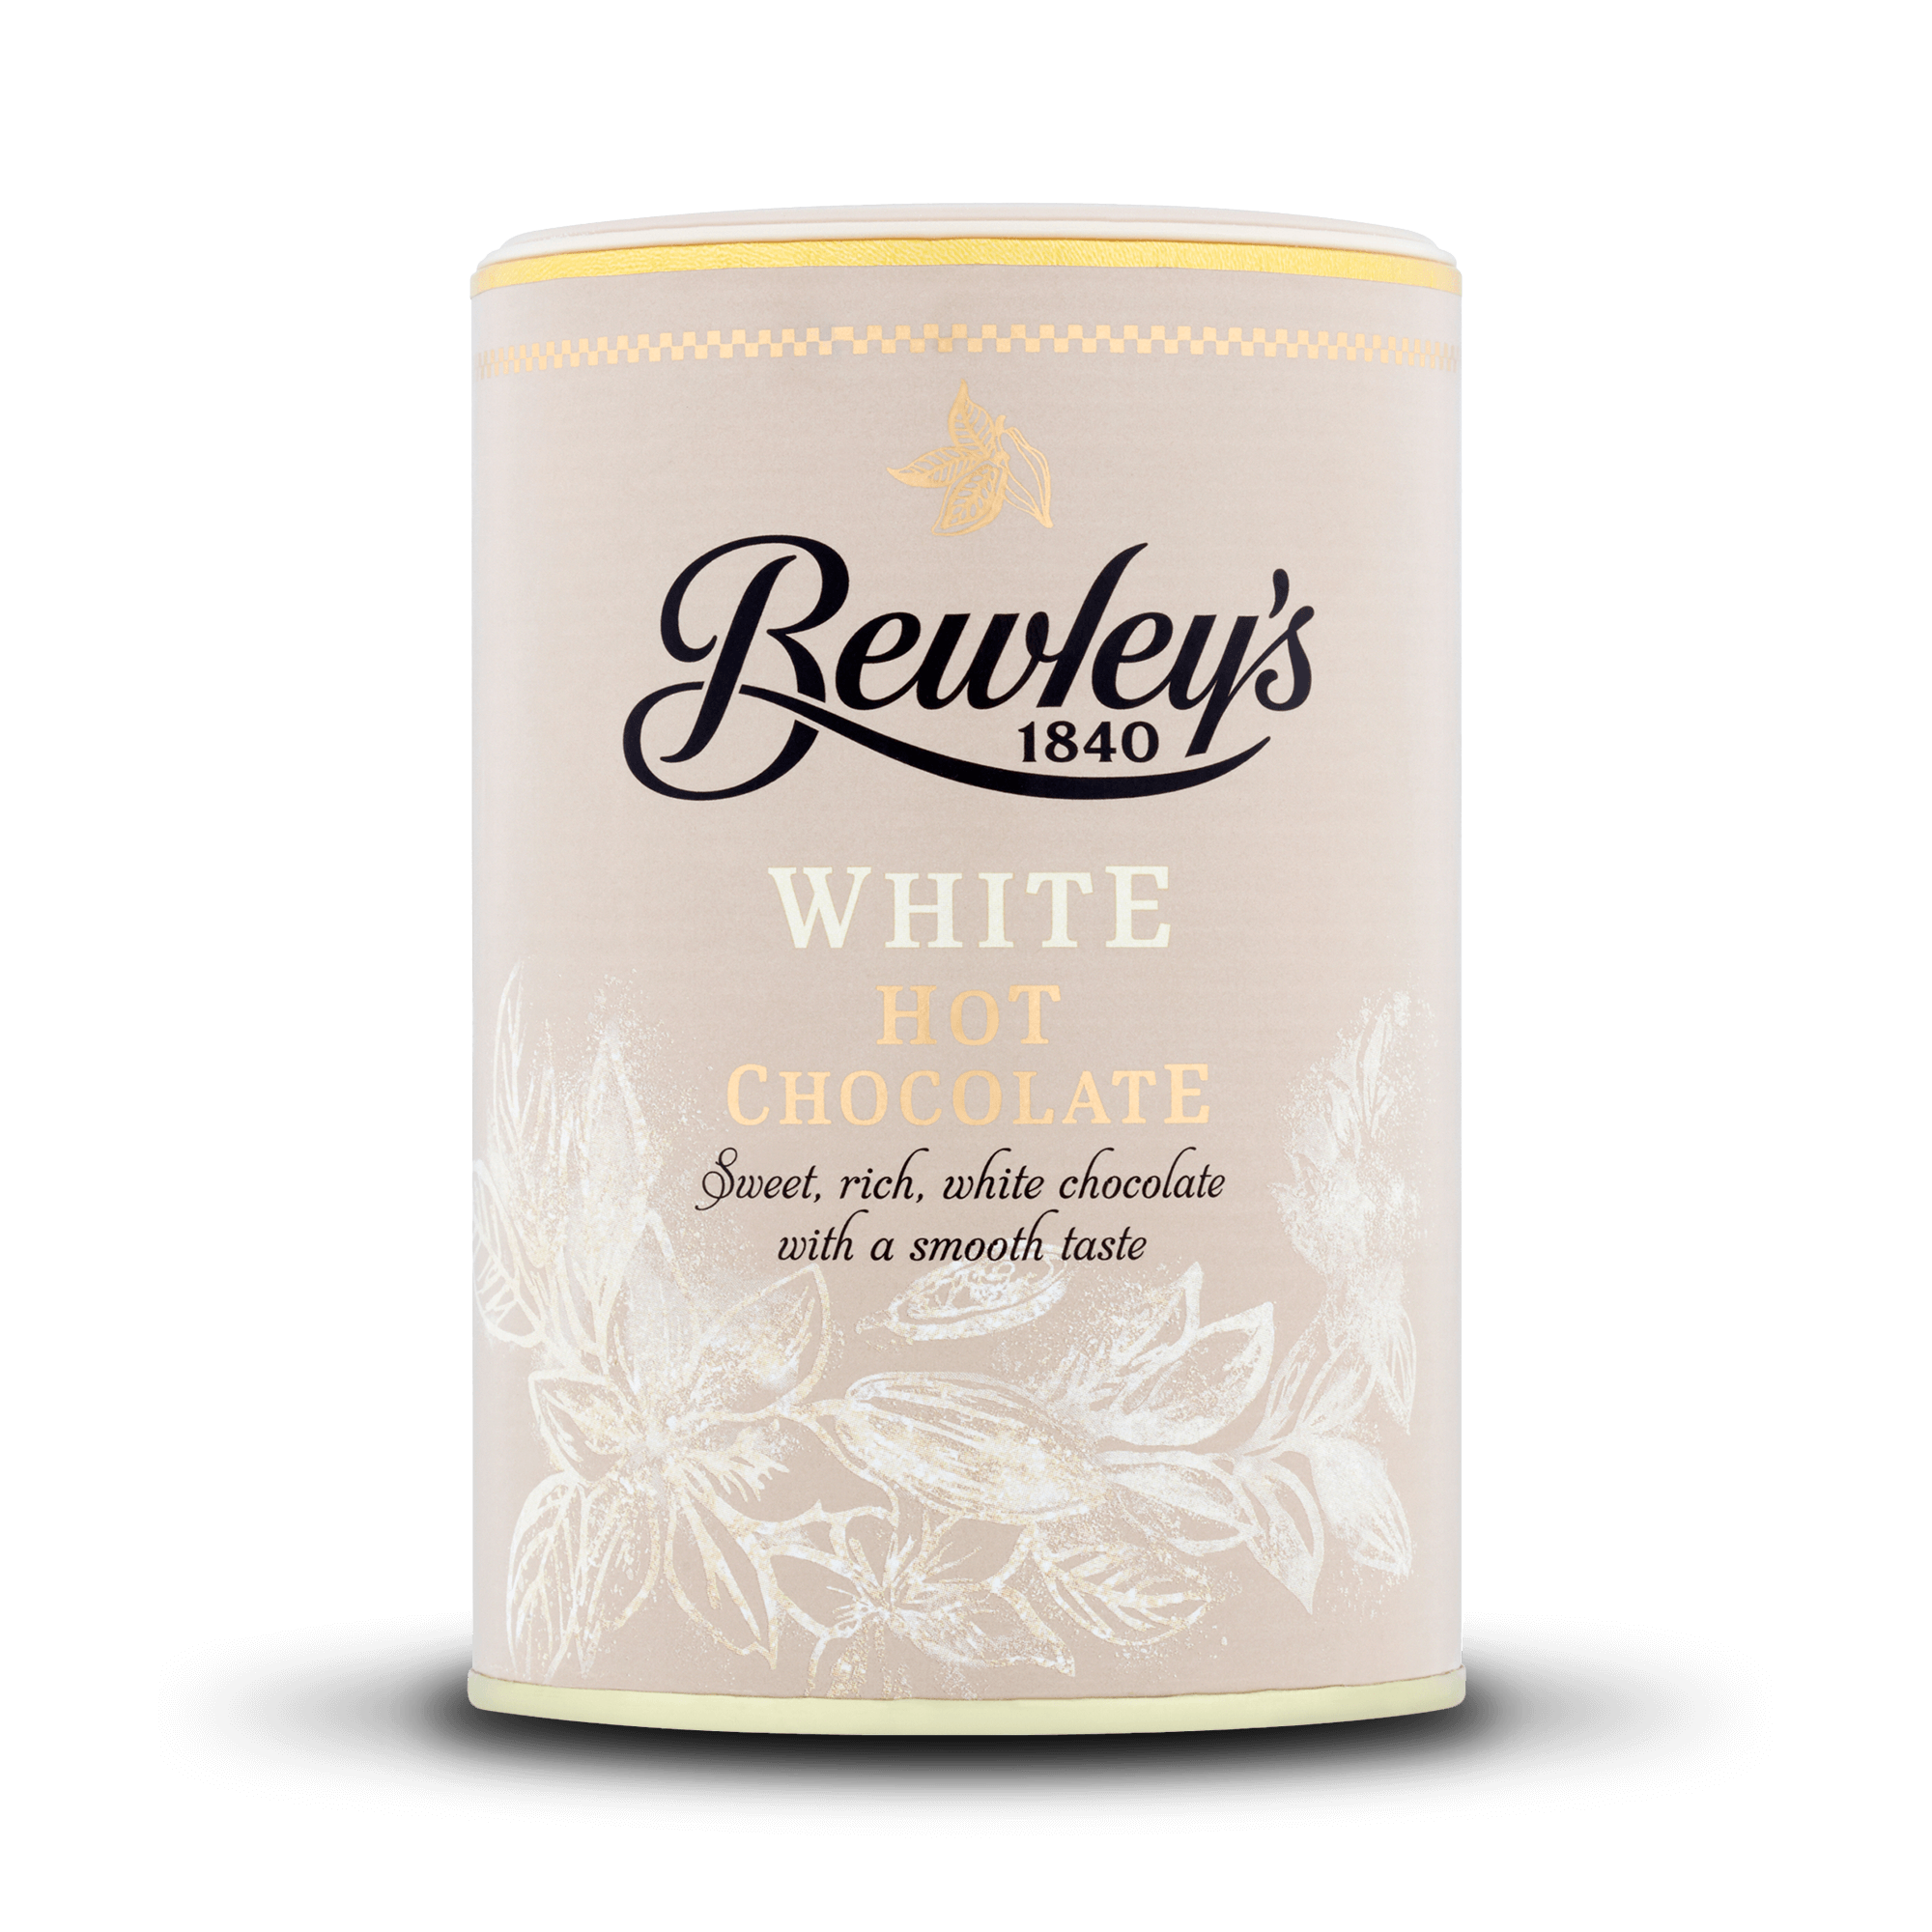 Bewley's White Hot Chocolate - Bewley's Tea & Coffee